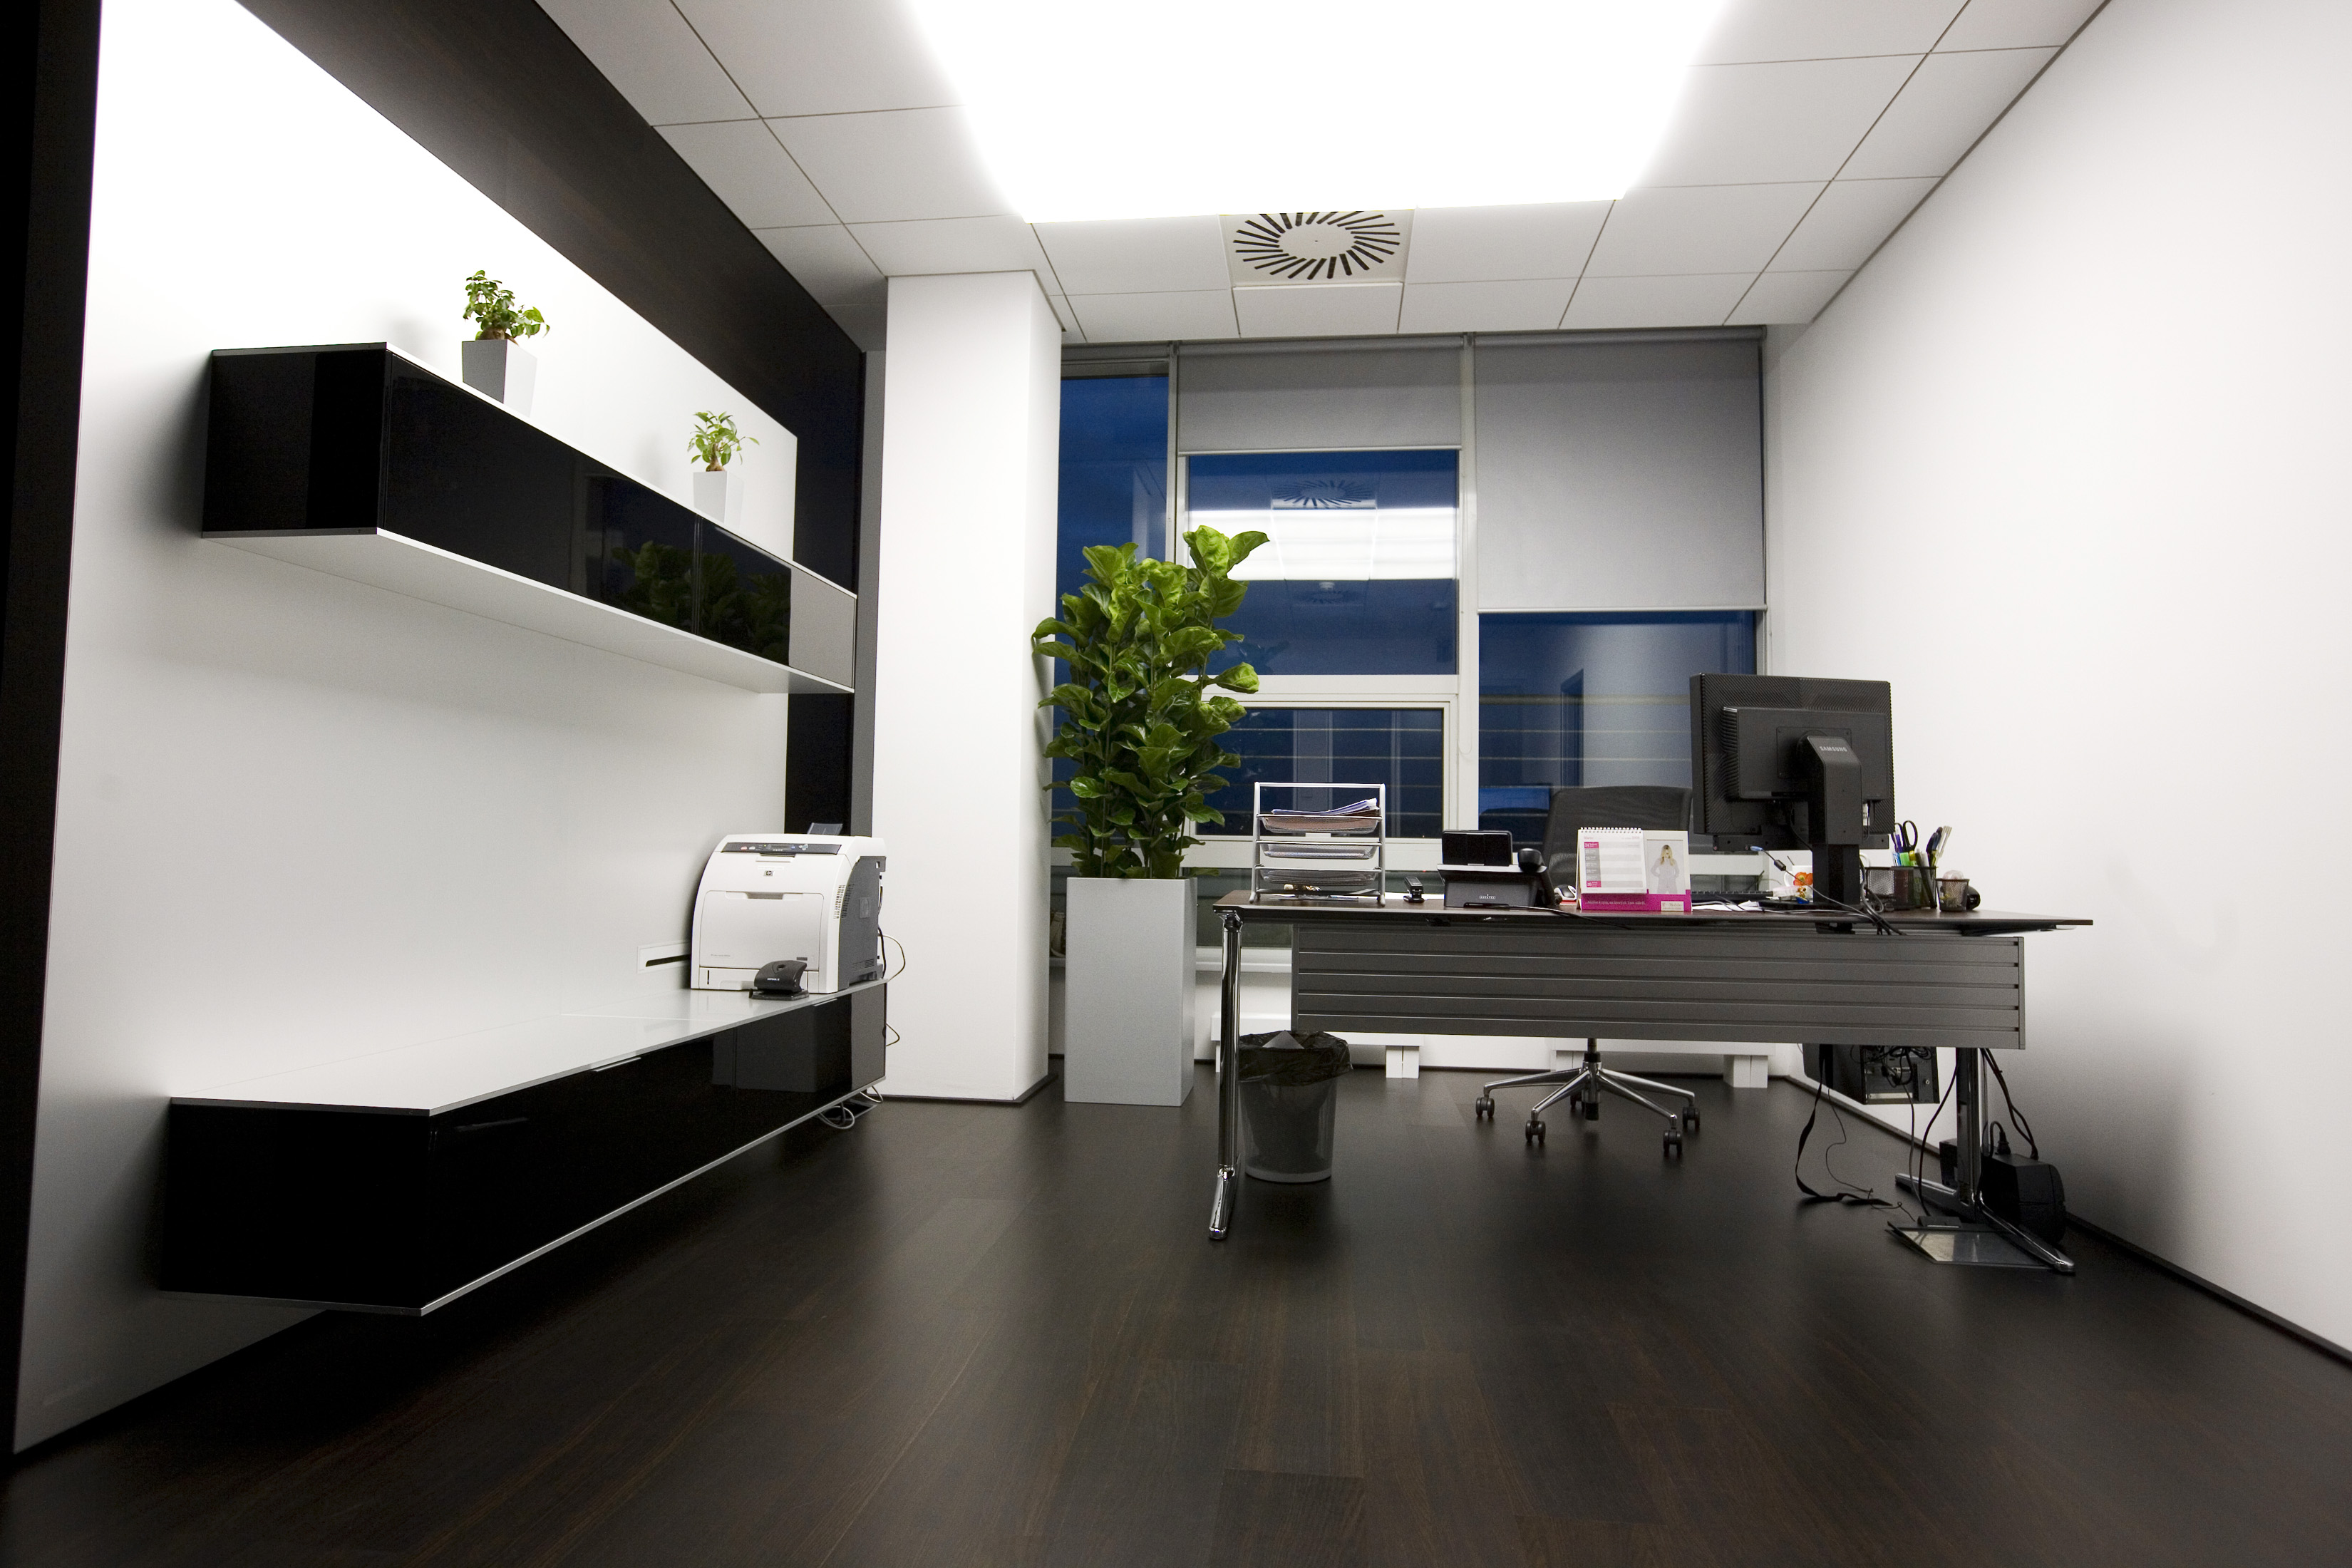 Tendencia decorativa en oficinas for Imagenes oficina